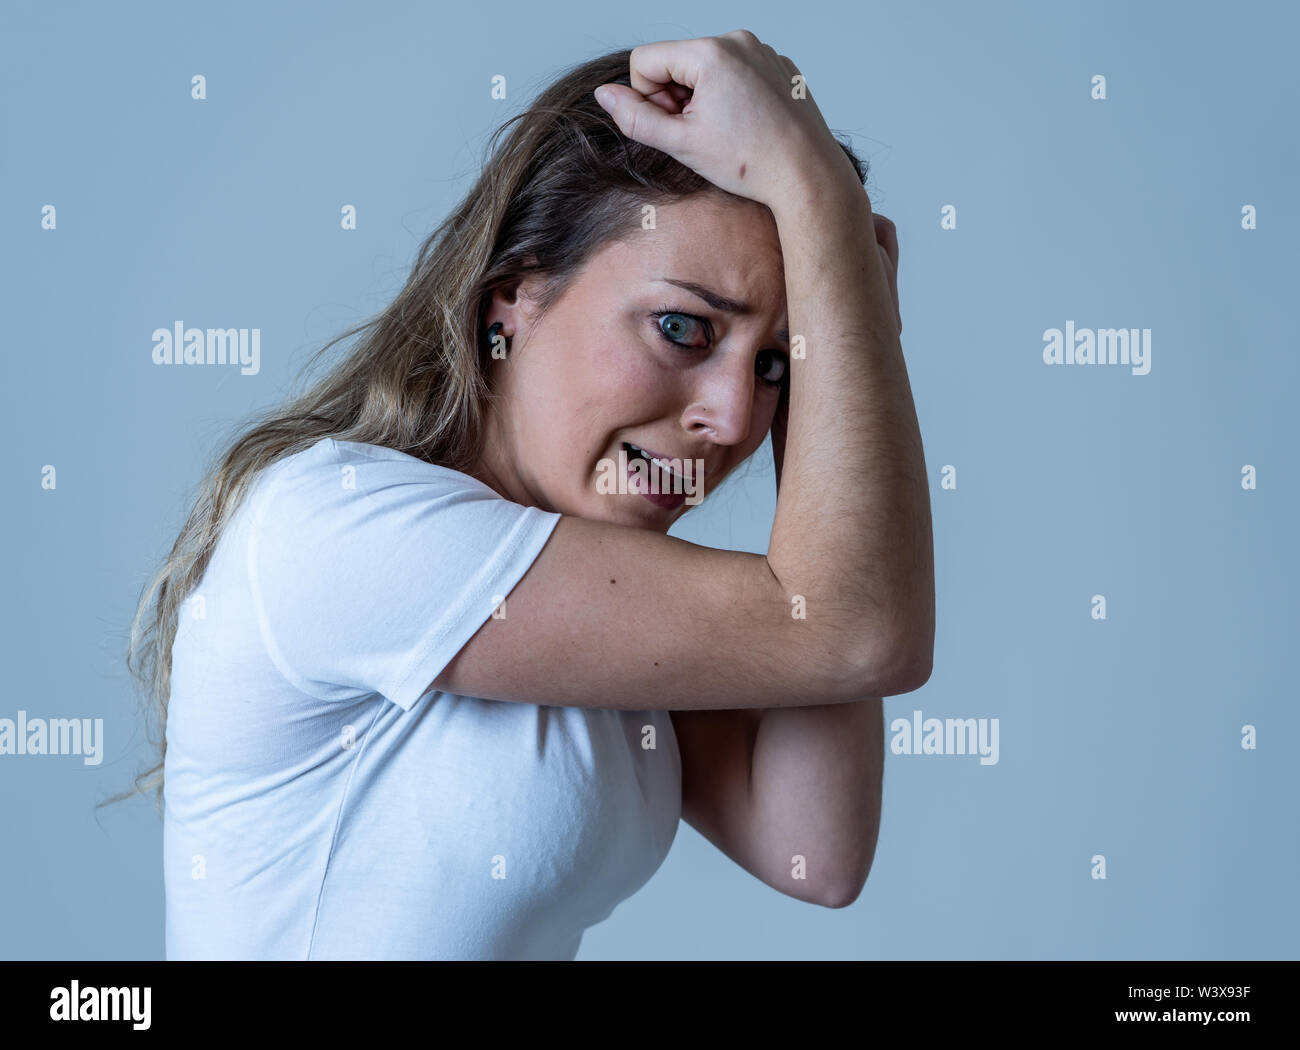 Close up of young woman feeling scared and shocked making fear, anxiety gestures. Looking terrified and desperate. People and Human expressions and em - Stock Image